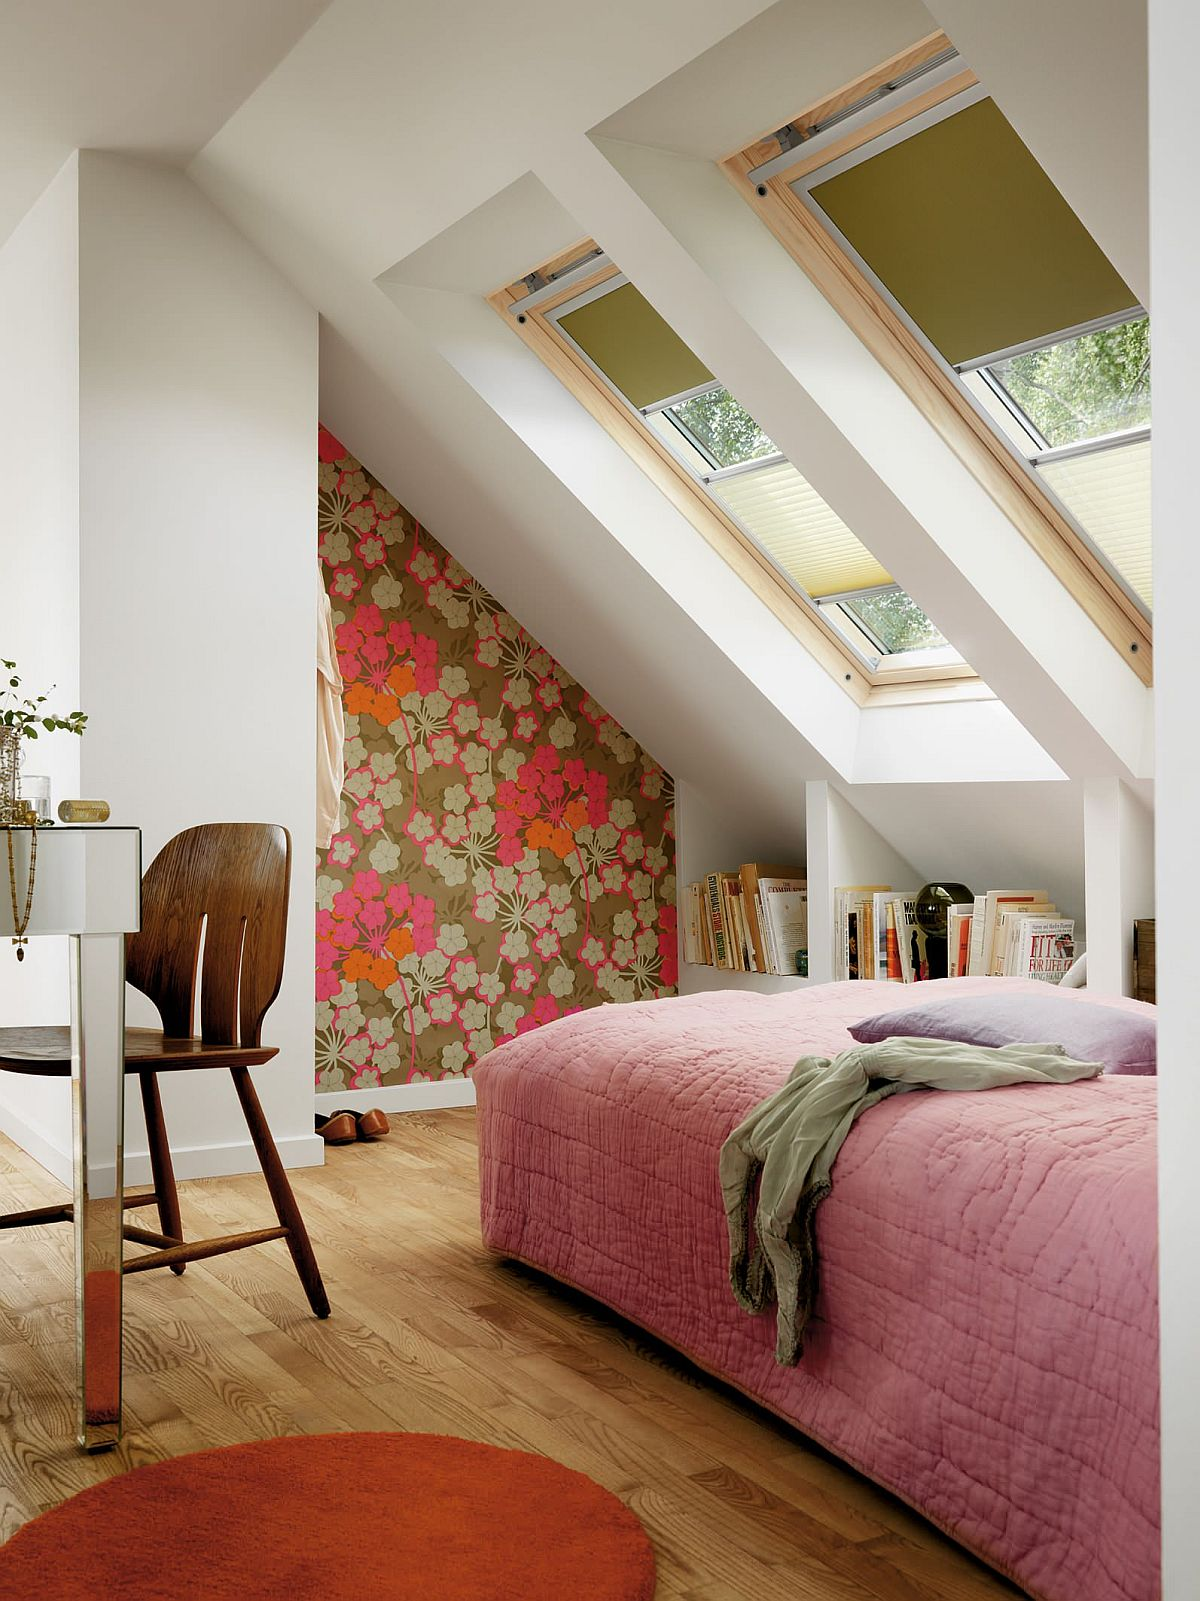 This little attic bedroom comes with a cool workspace as well!